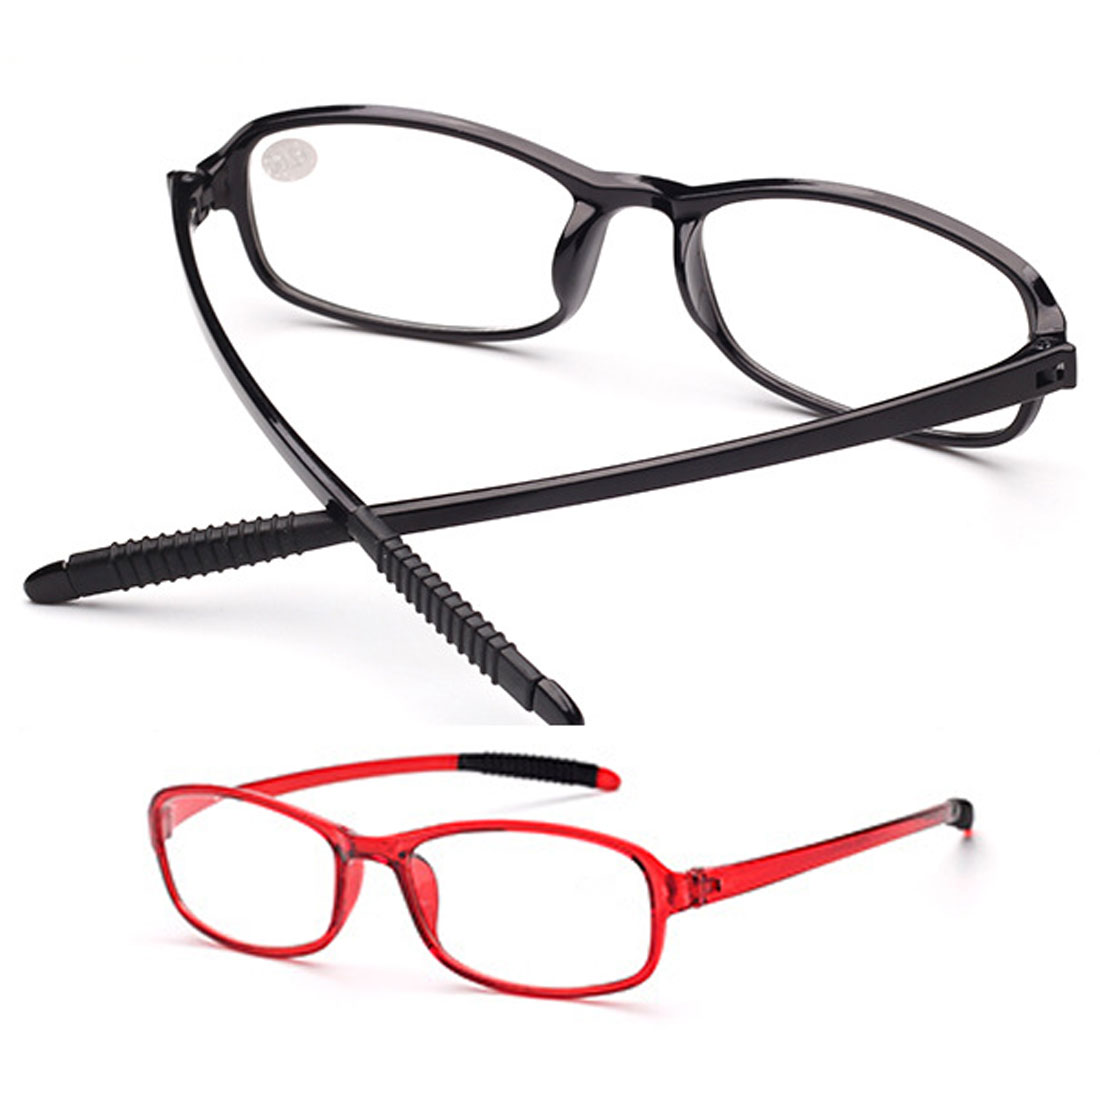 1pc Comfy TR90 Women Men Flexible Reading Glasses Readers Strength Presbyopic Glasses Diopter oculos de grau oculos leitura in Men 39 s Reading Glasses from Apparel Accessories